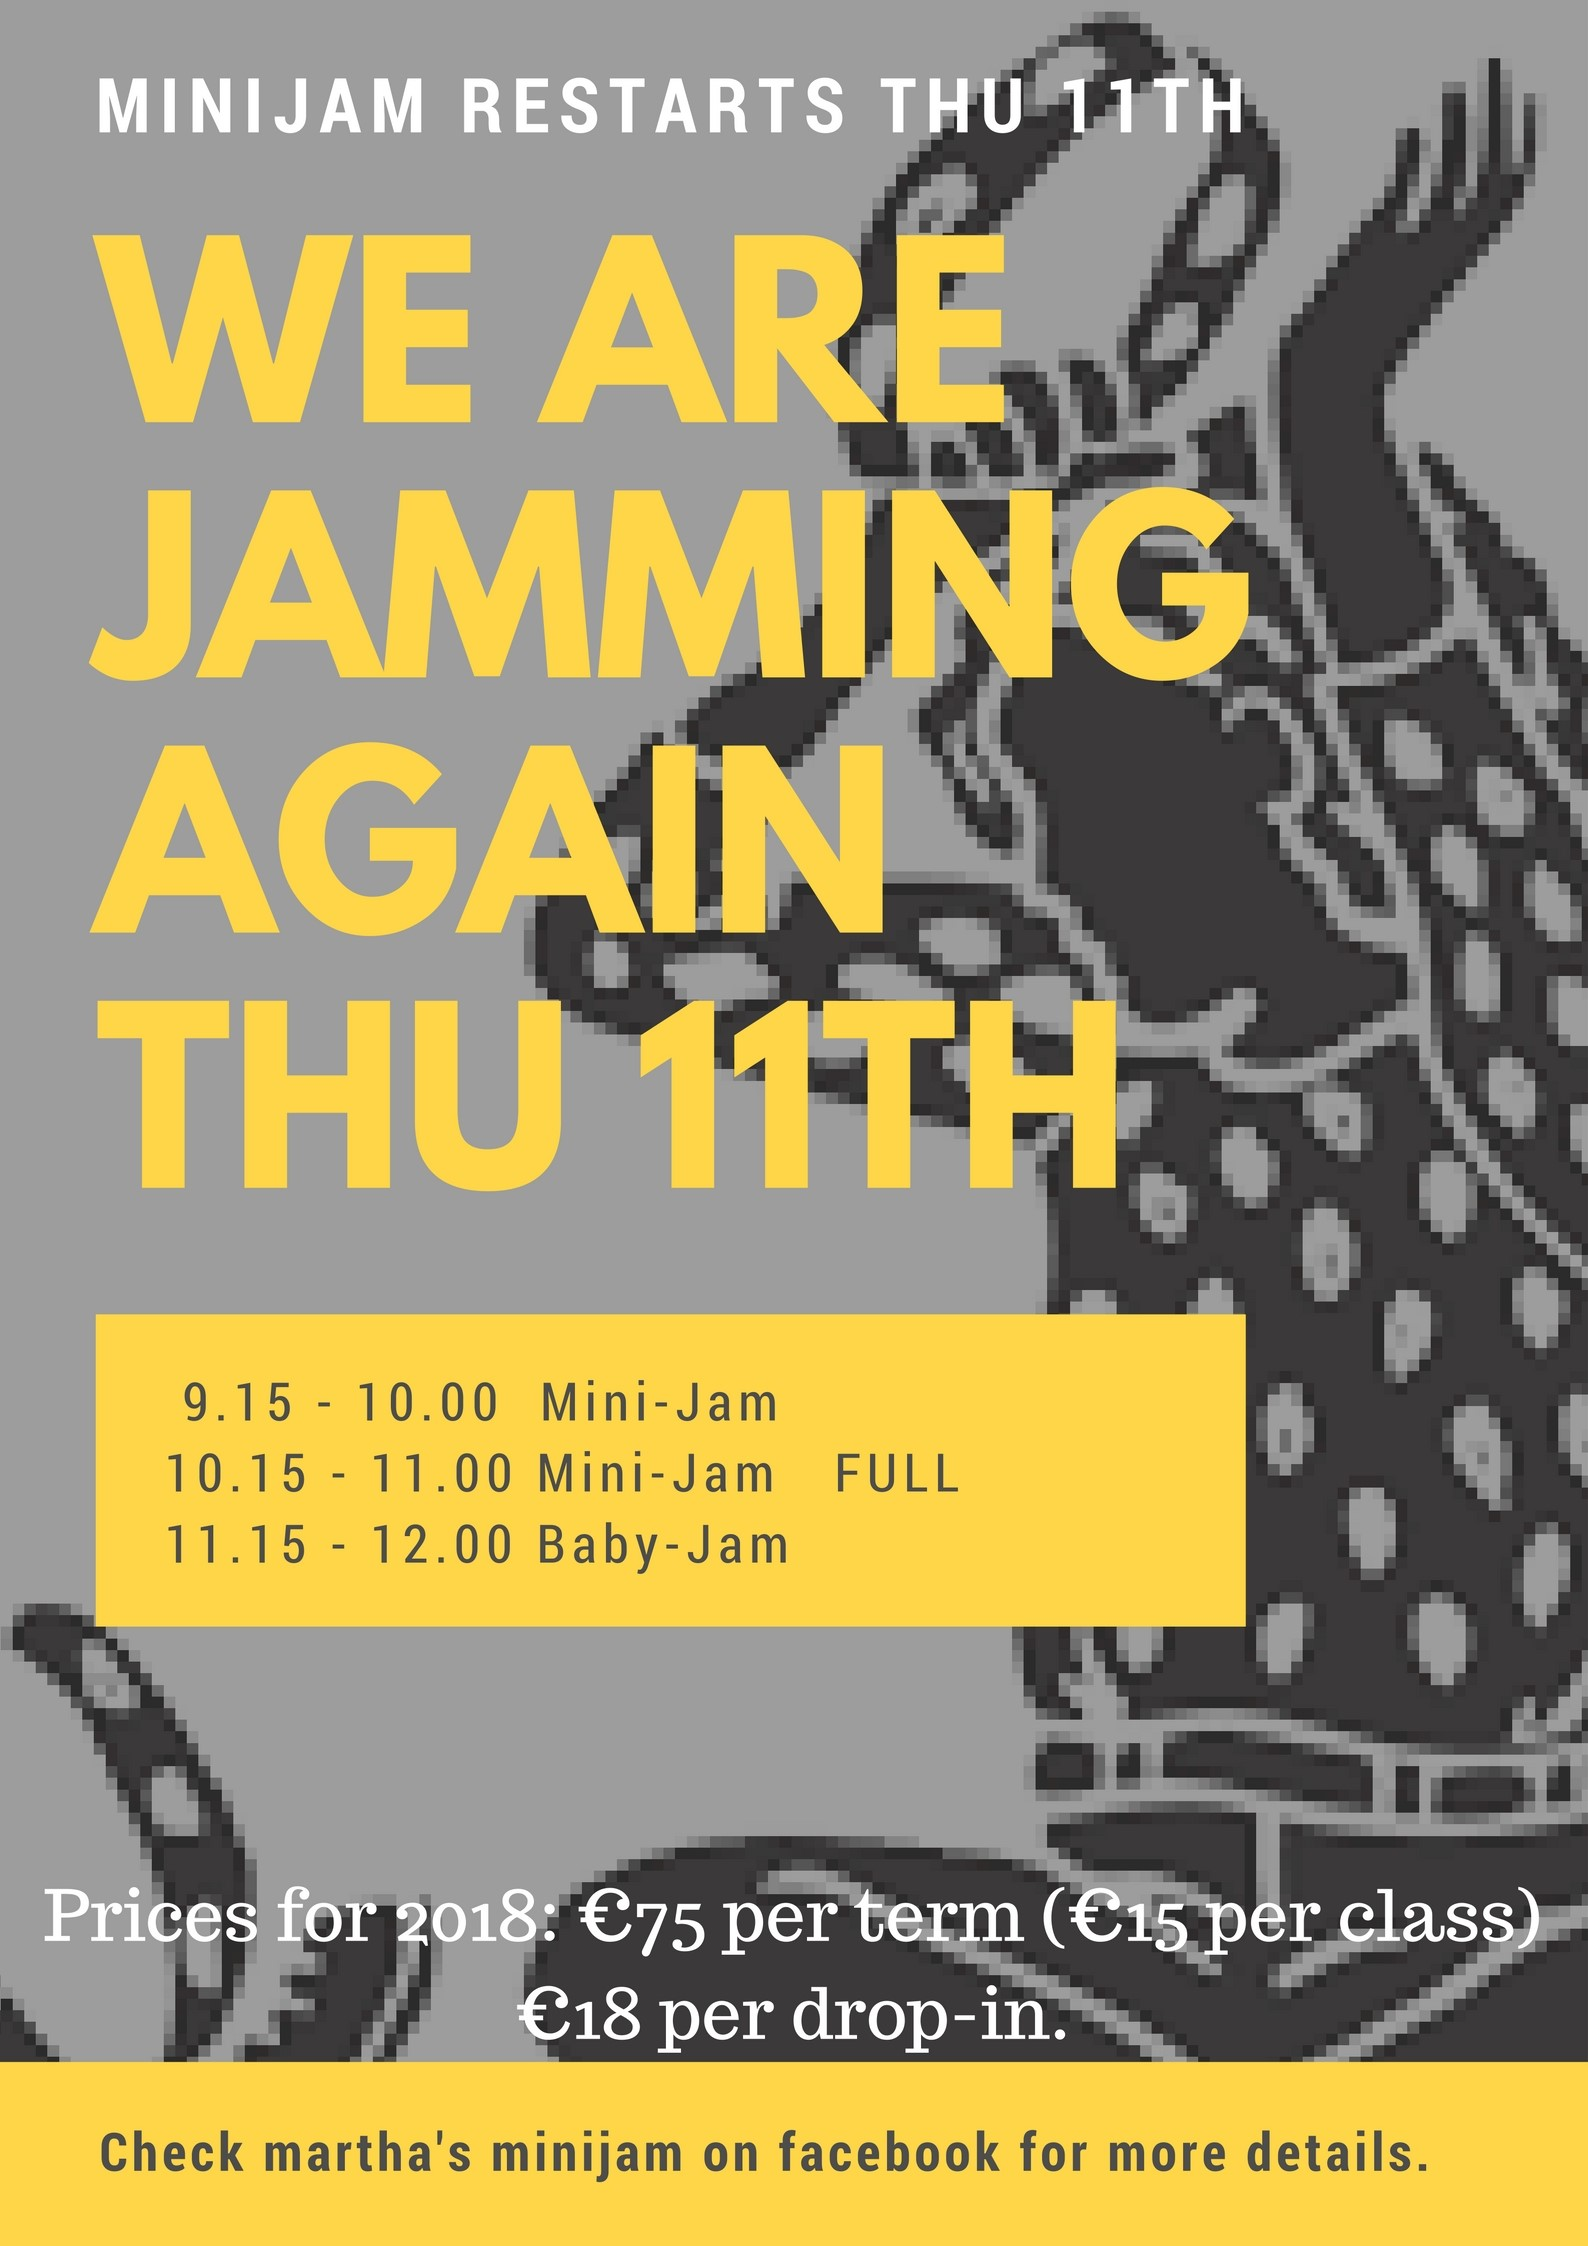 Baby & Mini Jam Re-starts January 11th